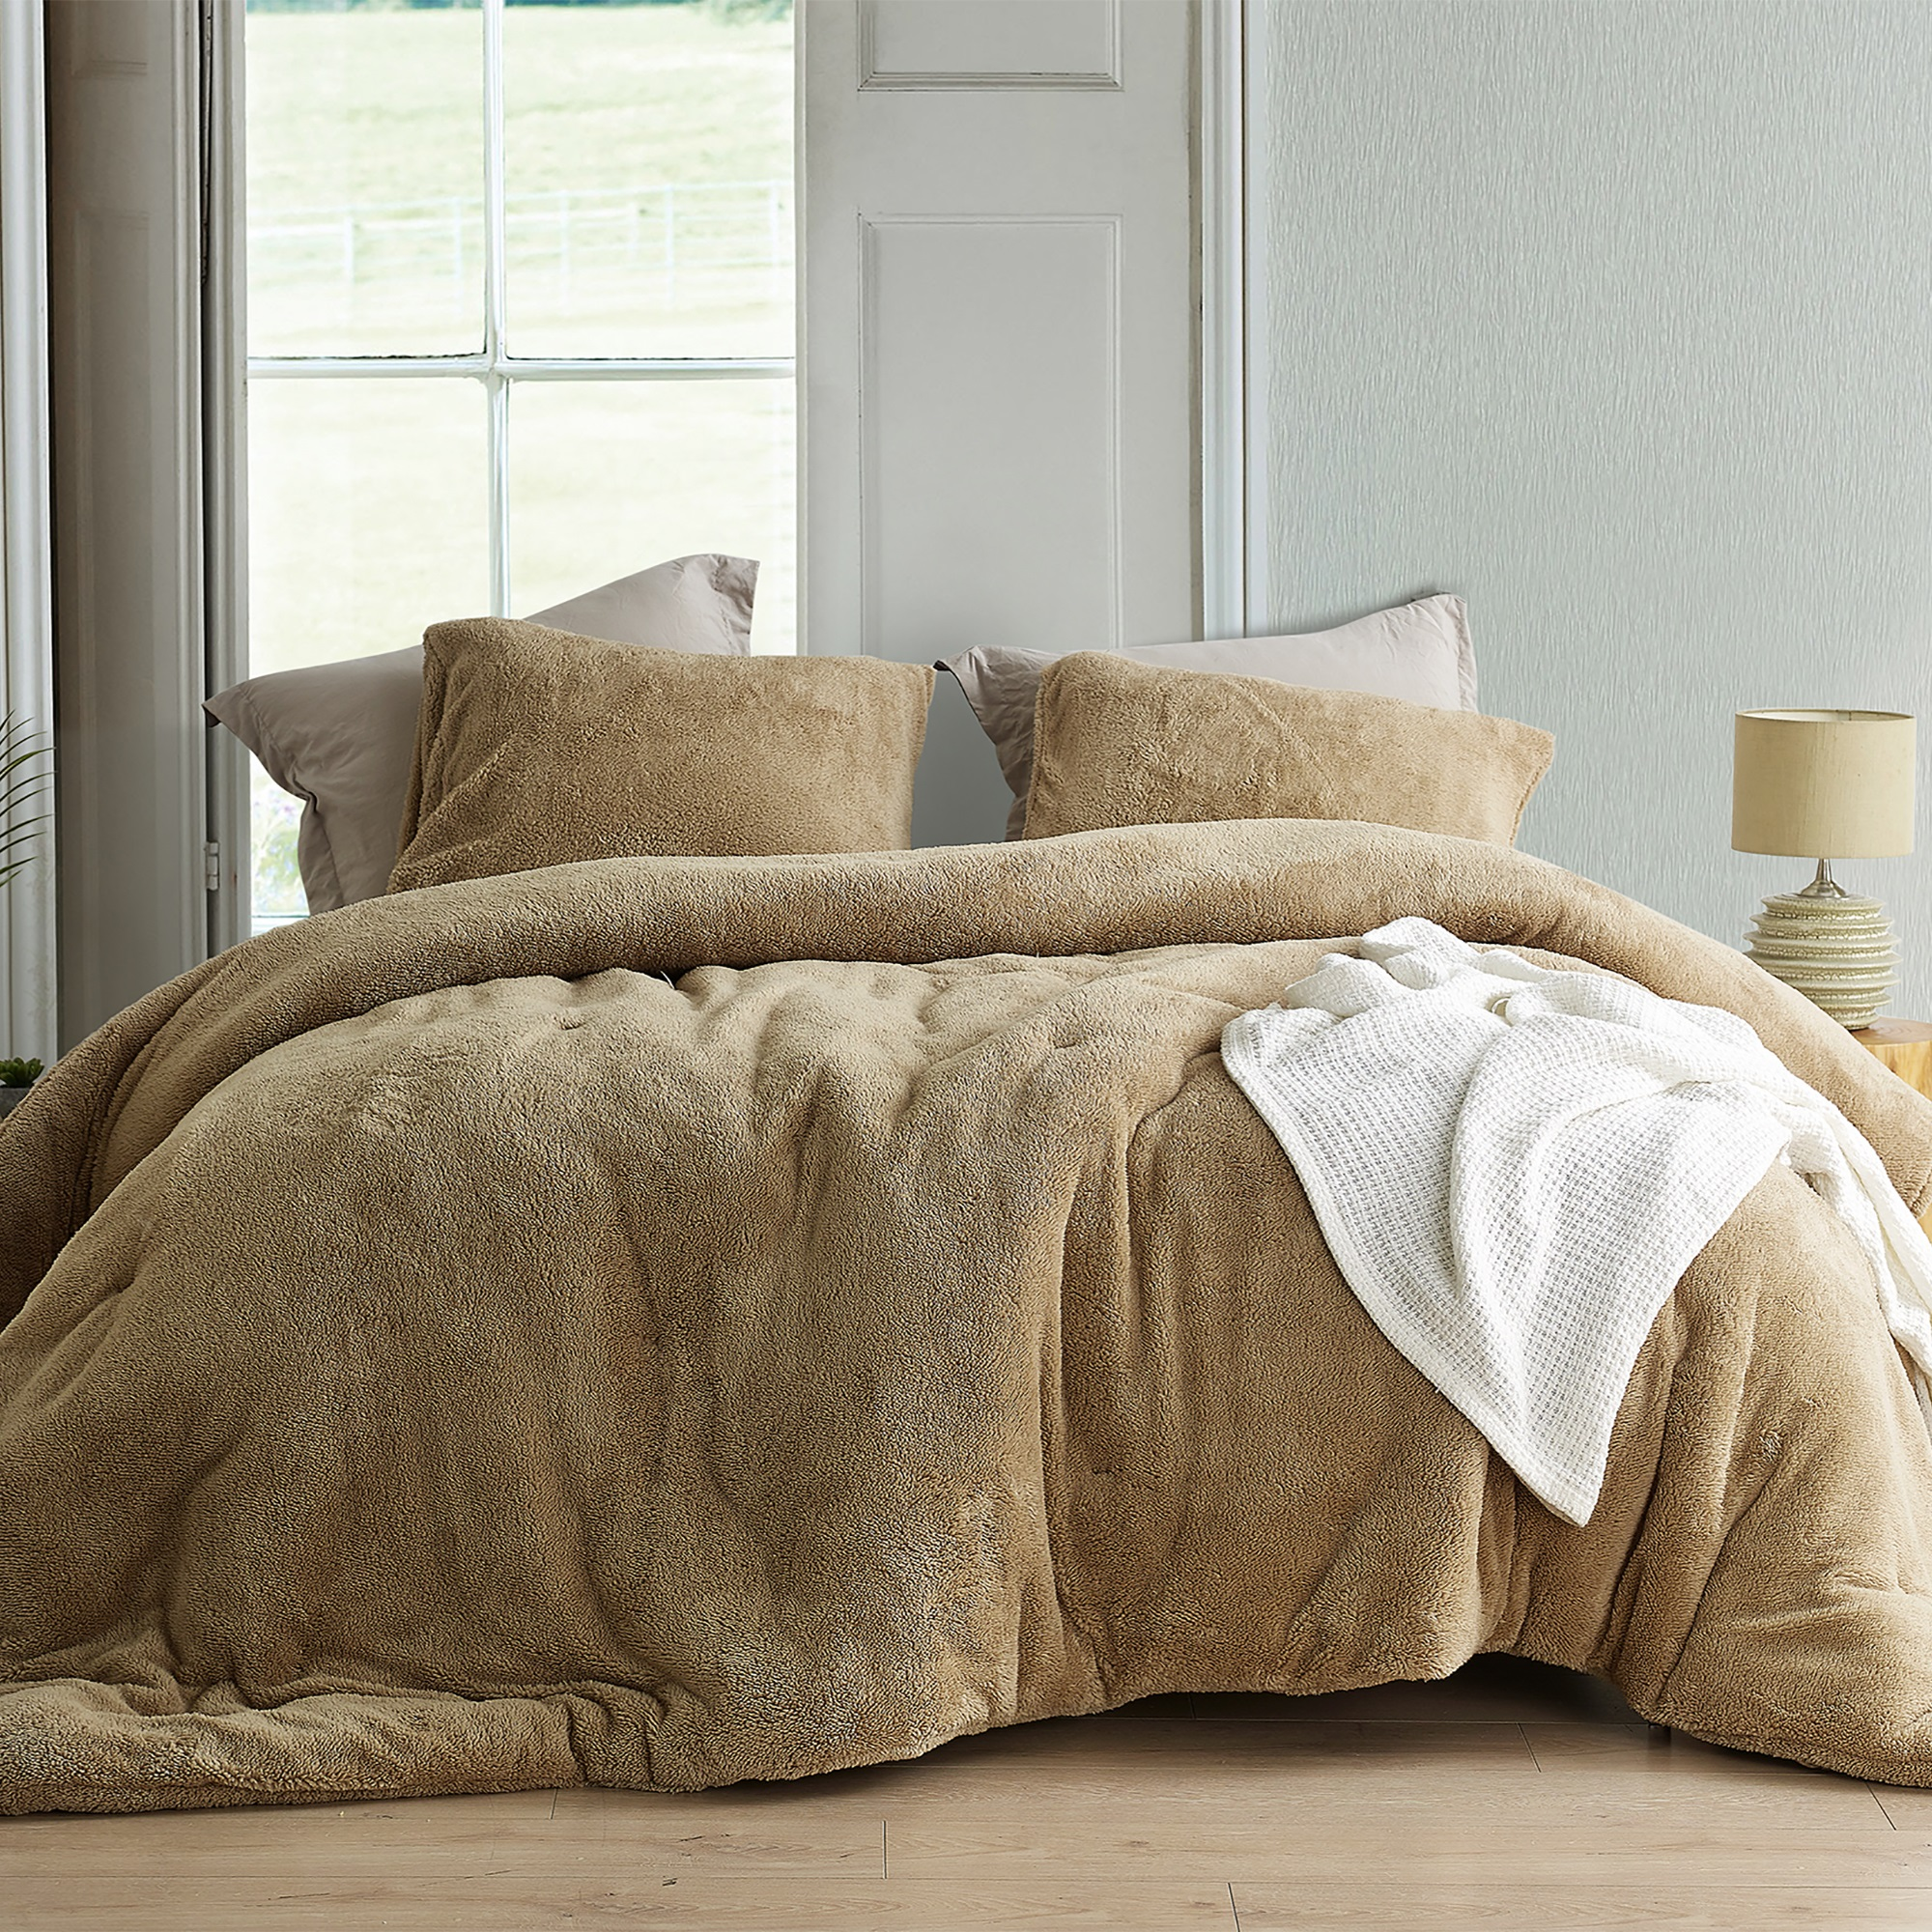 Coma Inducer® Oversized Comforter - Teddy Bear - Taupe Natural